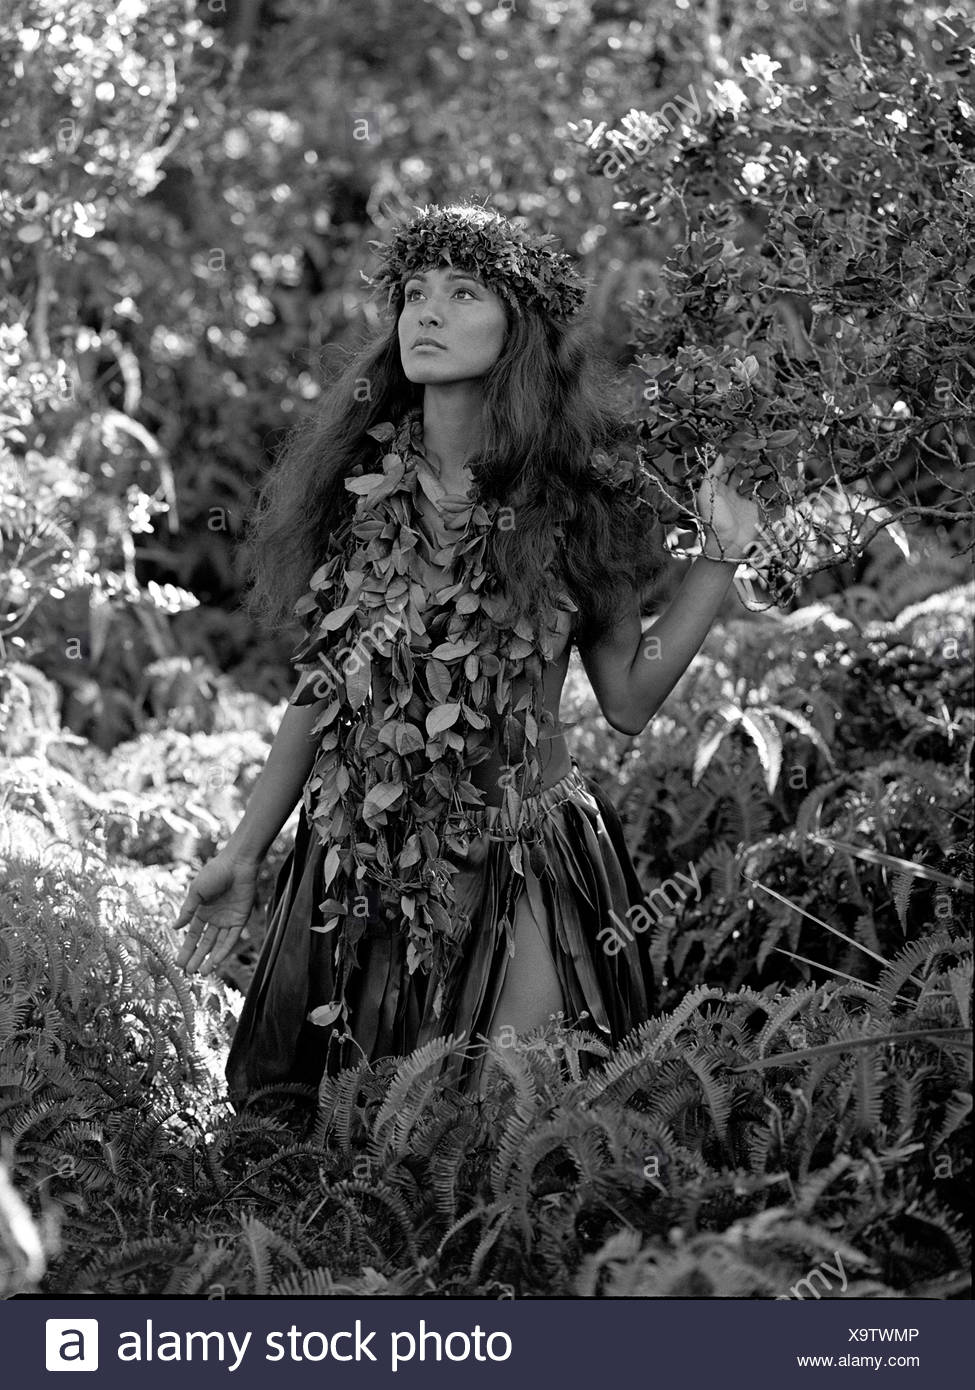 Young Hawaiian girl  near 'Steam Vents' in Hawaii Volcanoes National Park, wearing maile lei and lei poo (head lei). - Stock Image